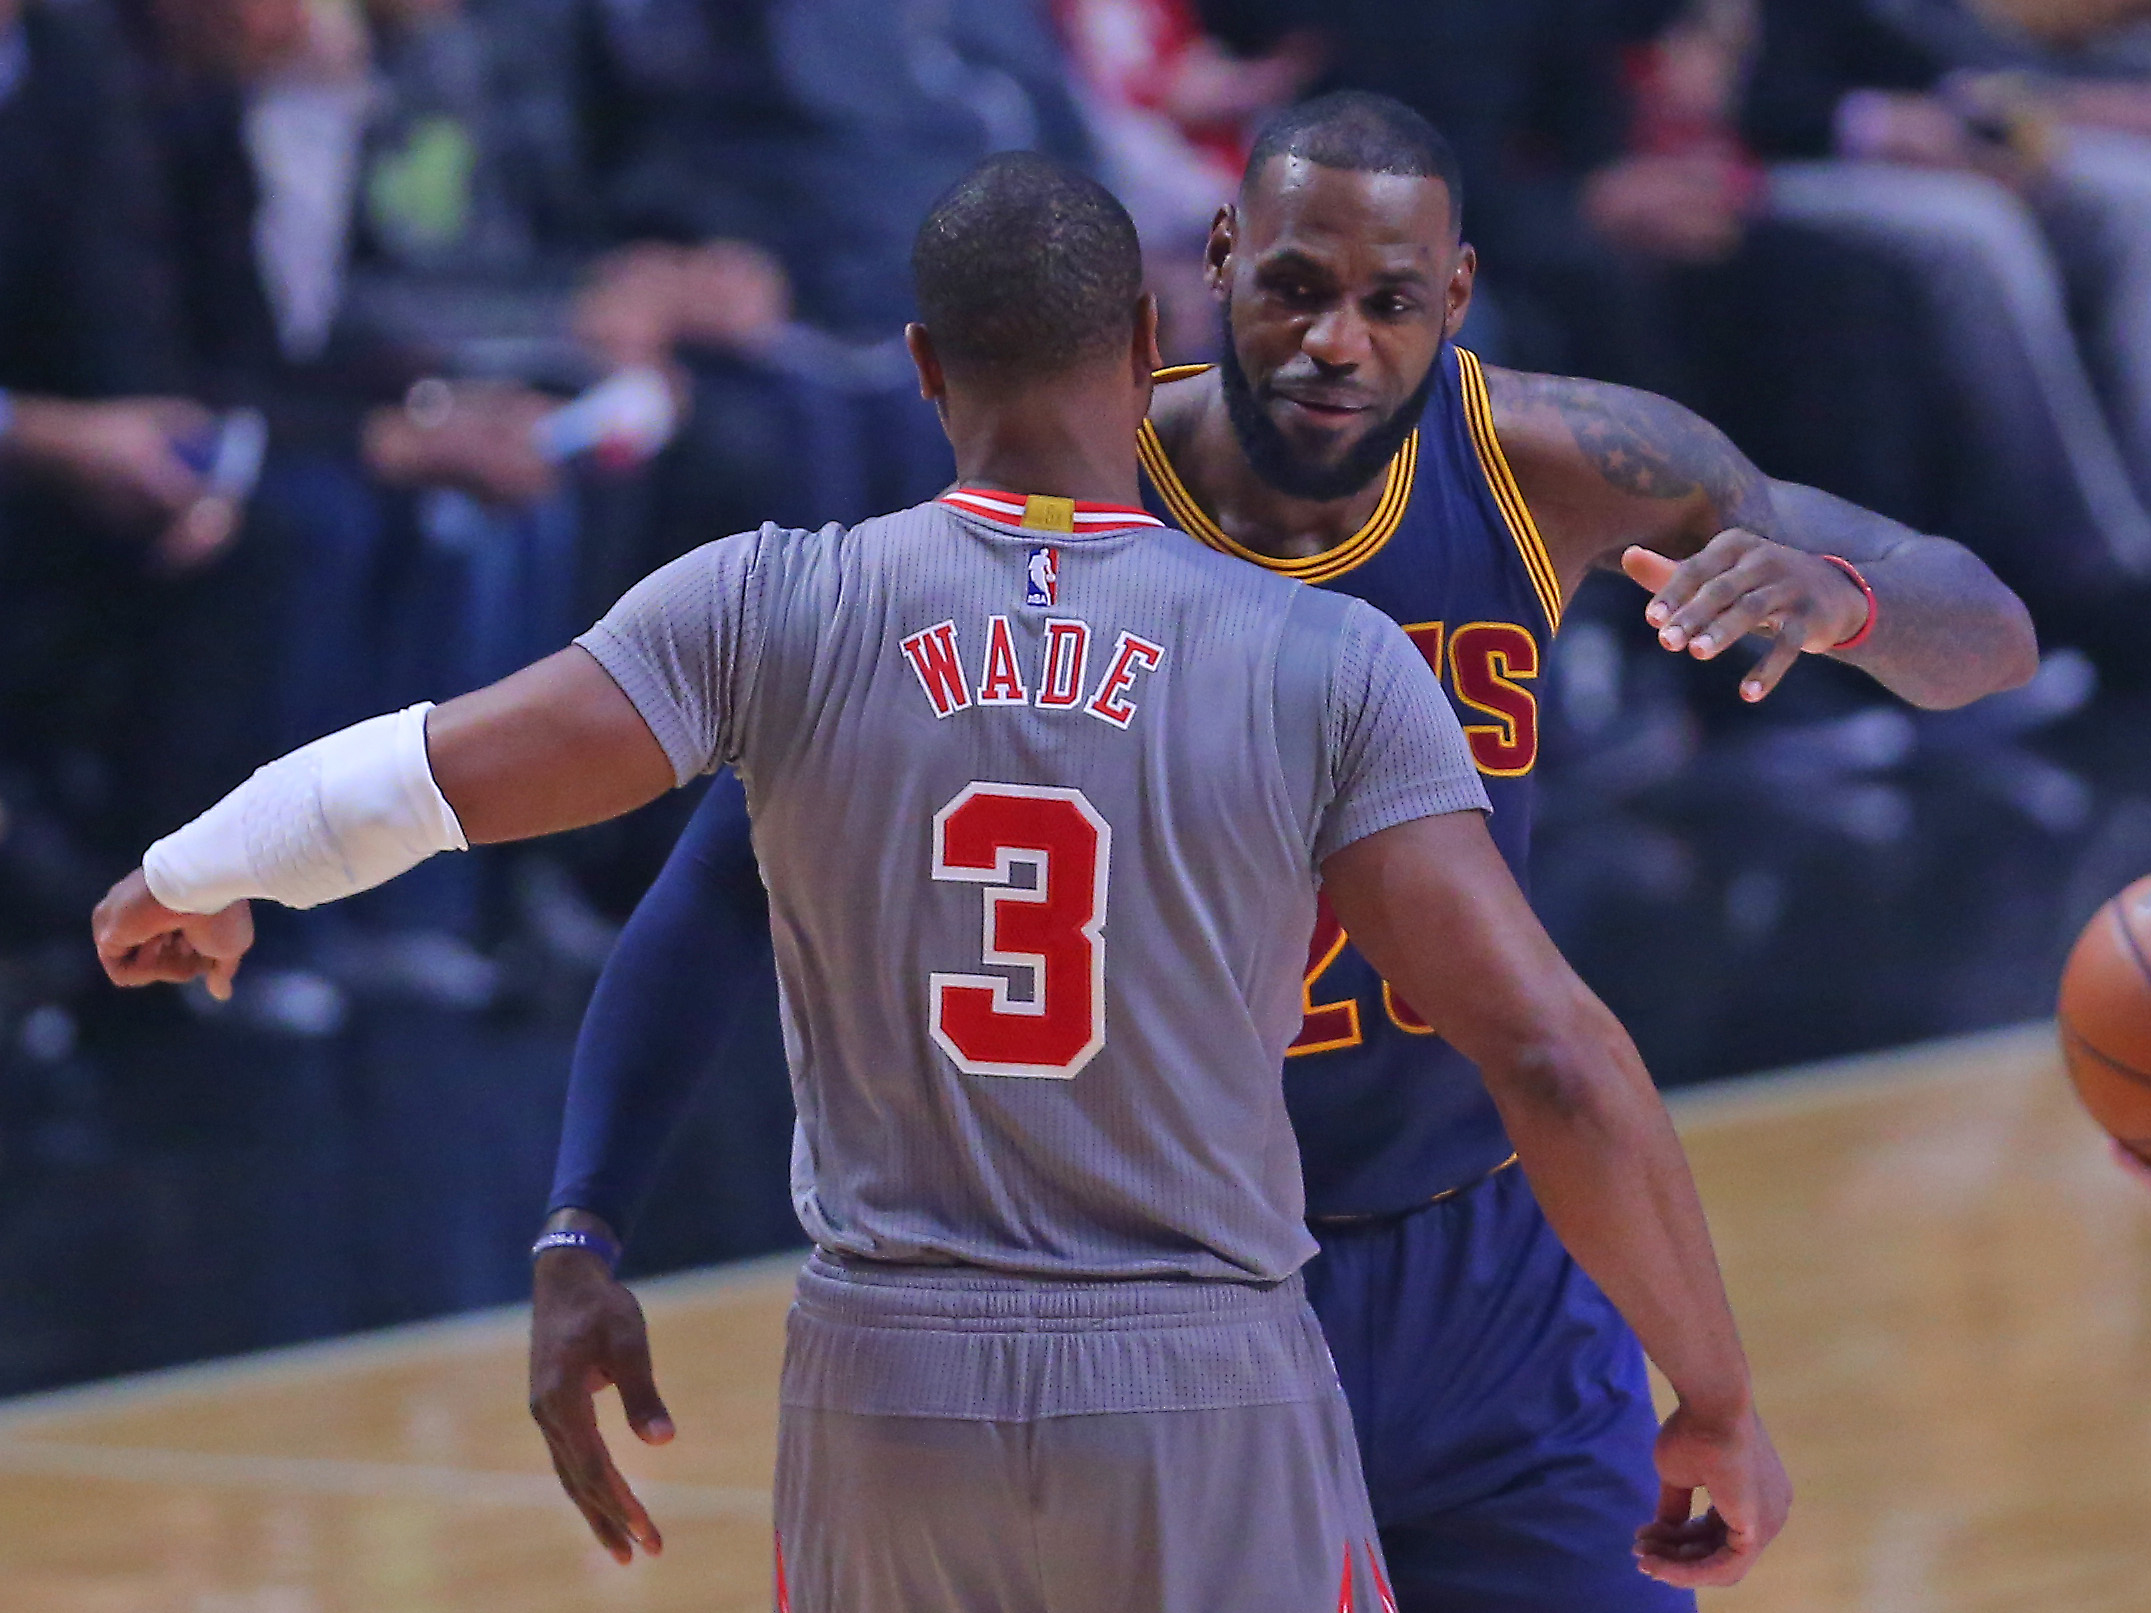 9717578-nba-cleveland-cavaliers-at-chicago-bulls